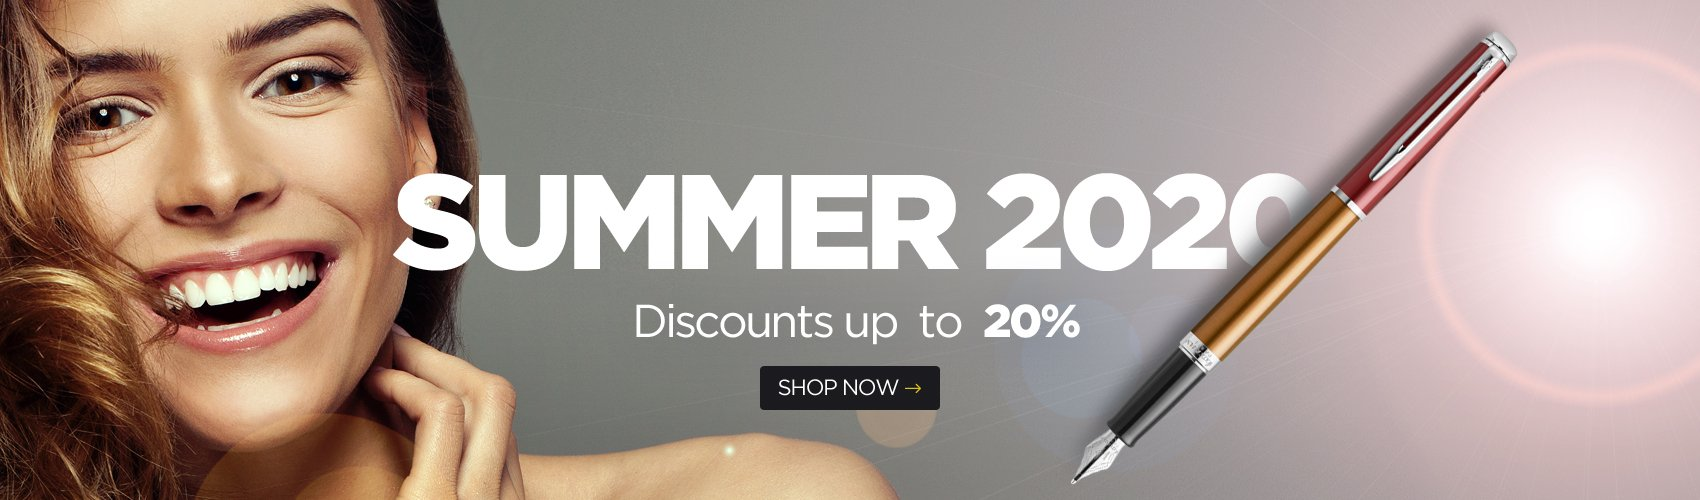 Waterman summer promo 2020